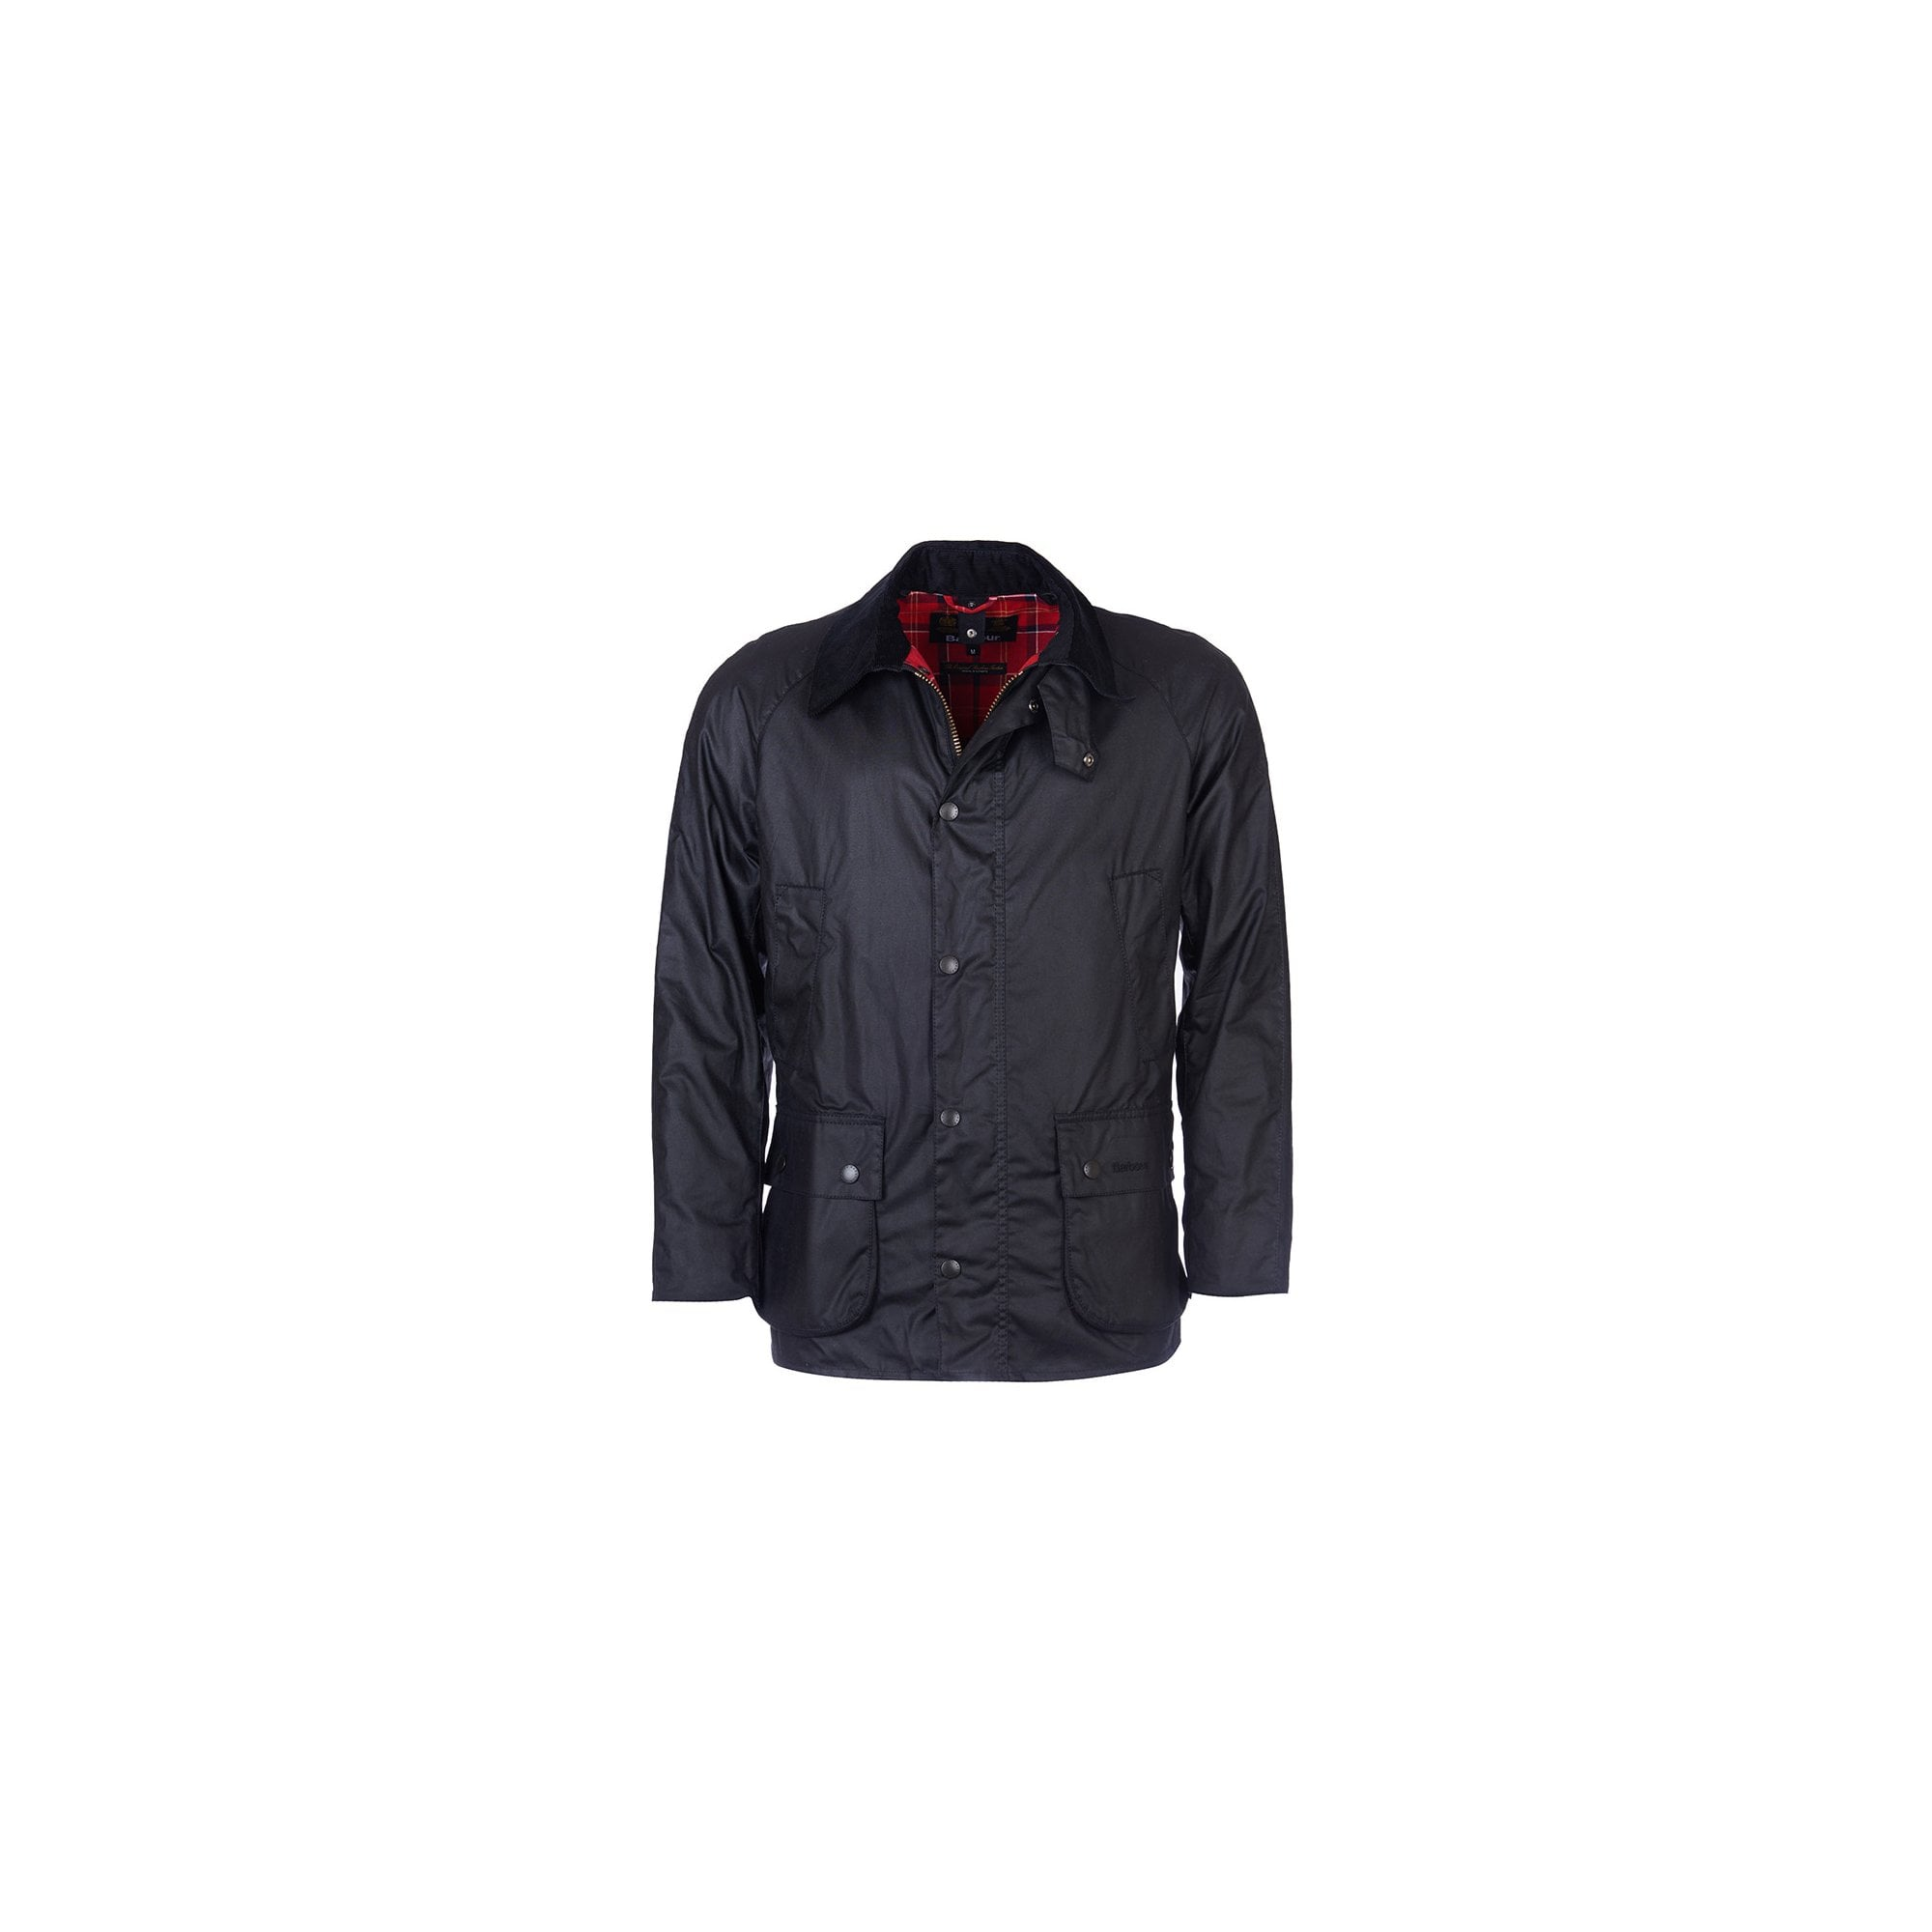 981017c9a Ashby Wax Jacket in Black